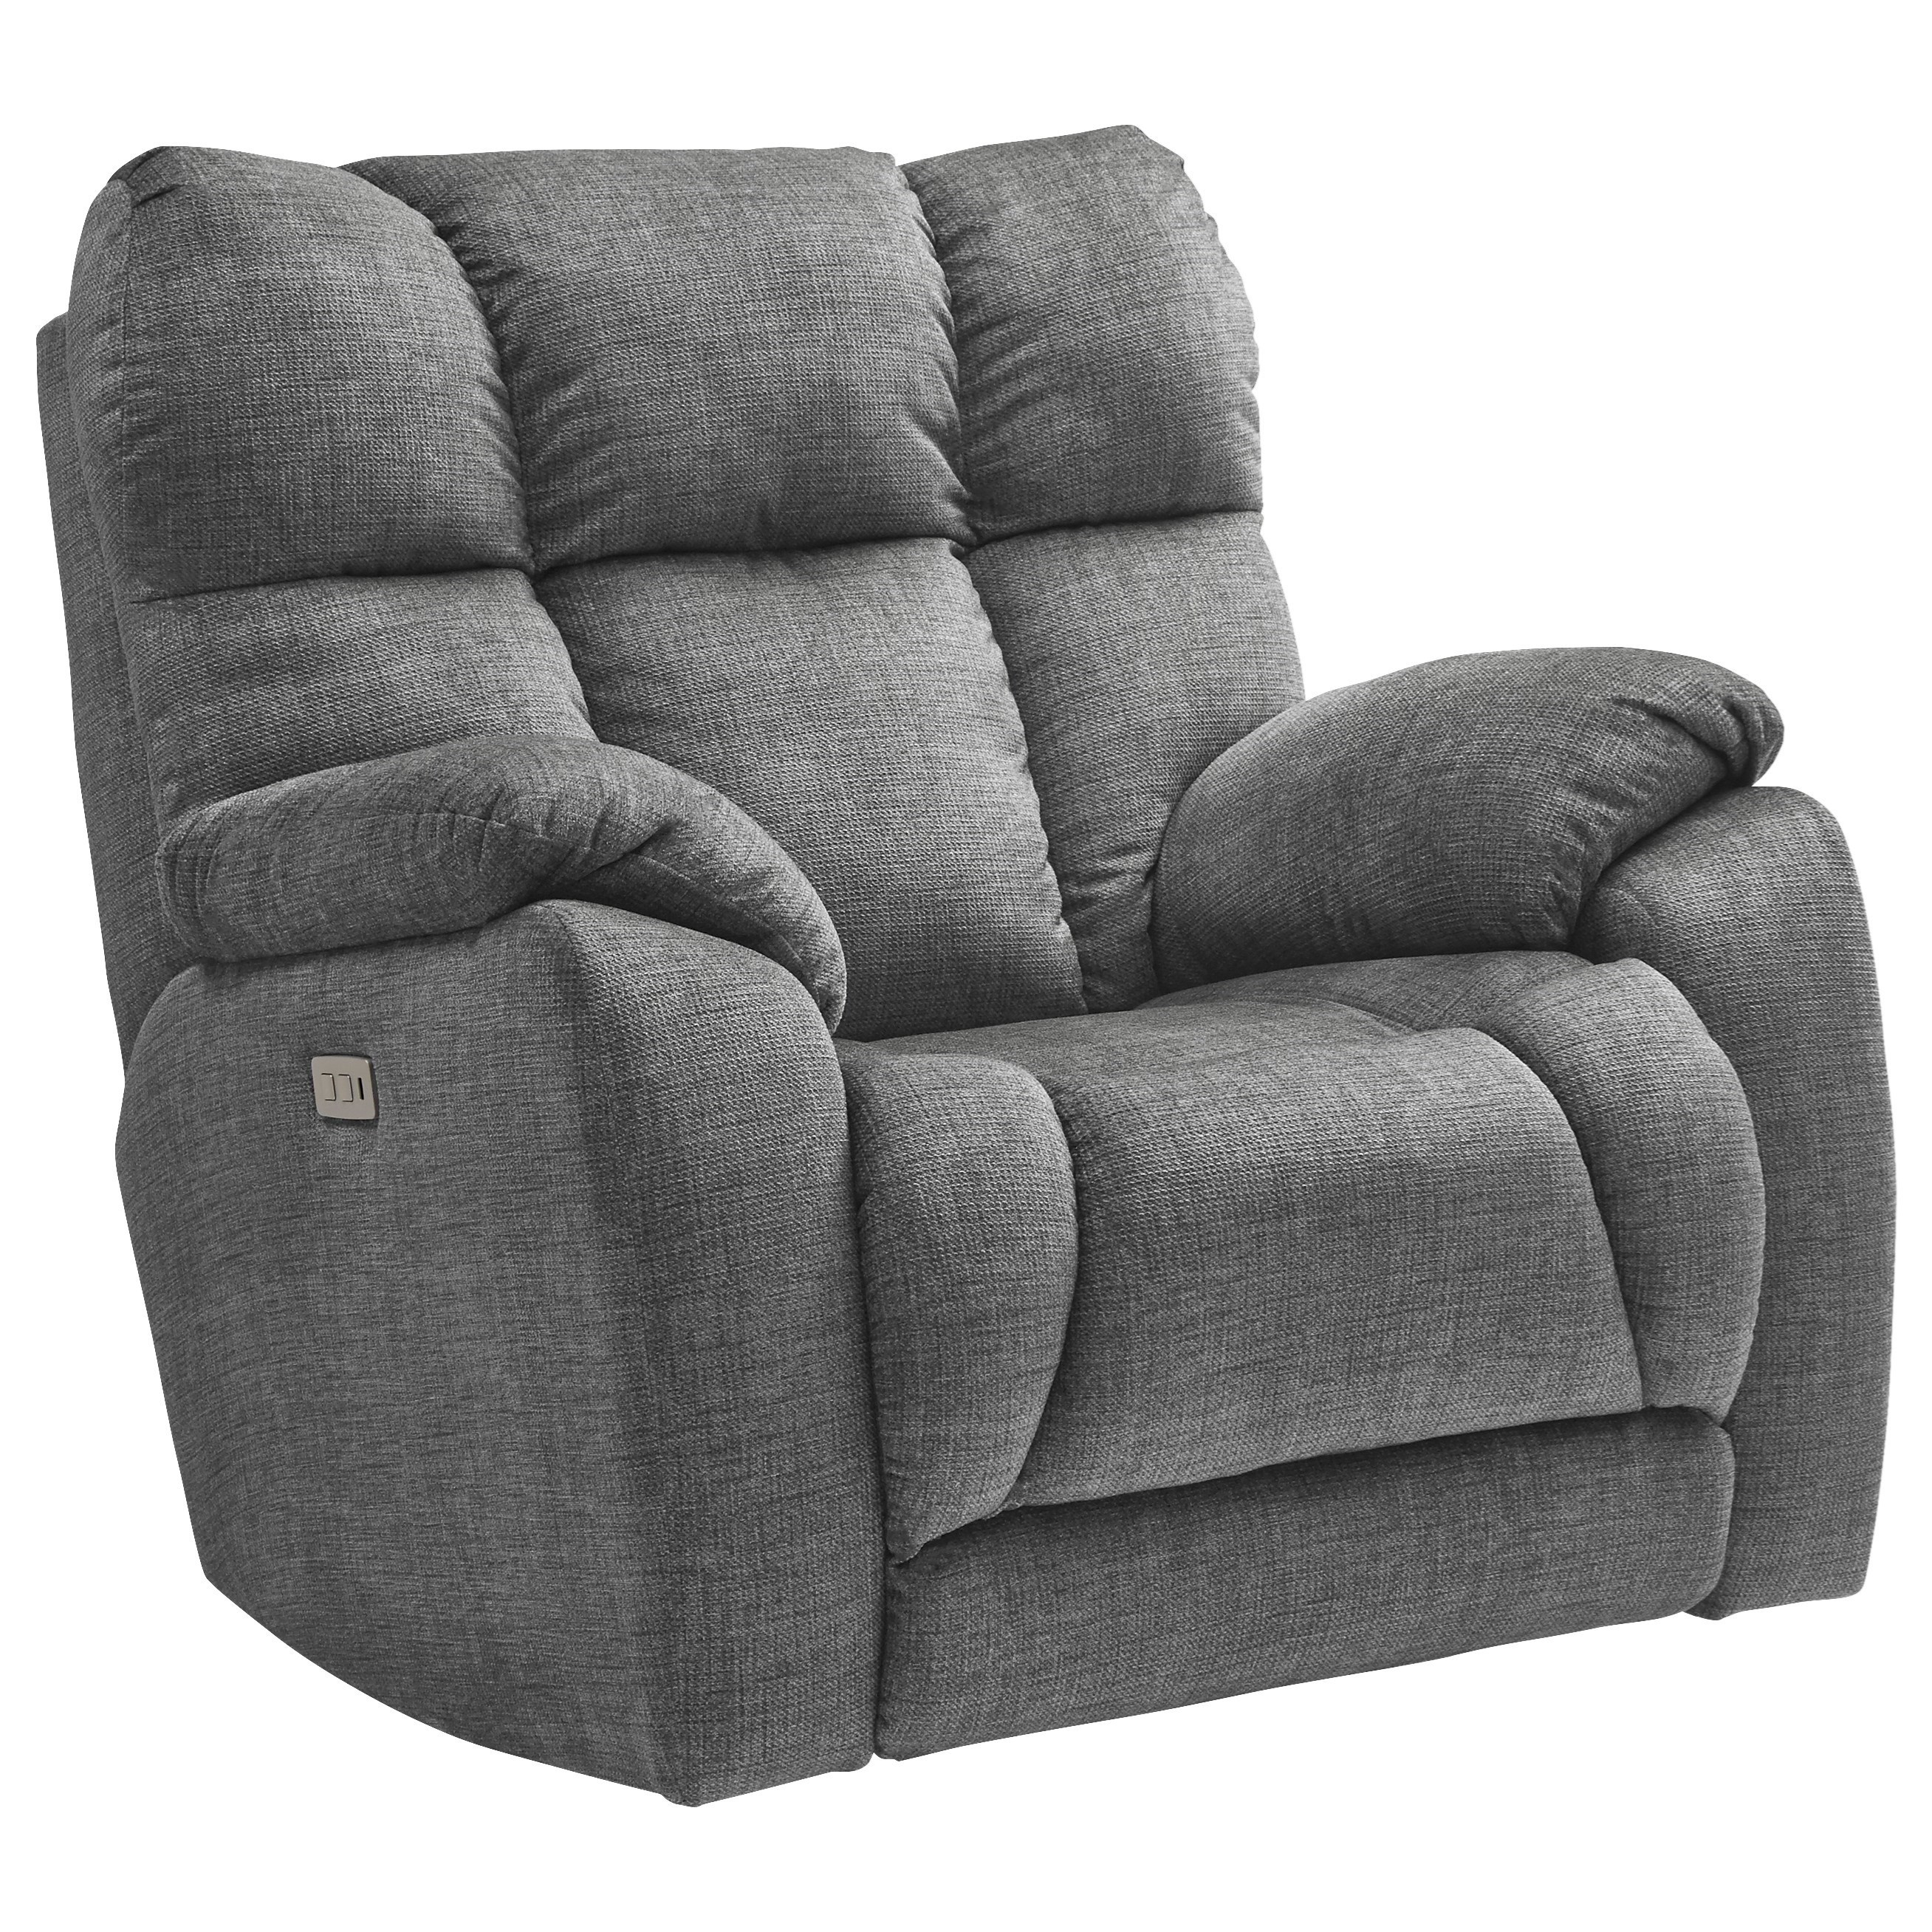 Wild Card Power Wallhugger Recliner by Southern Motion at Sparks HomeStore